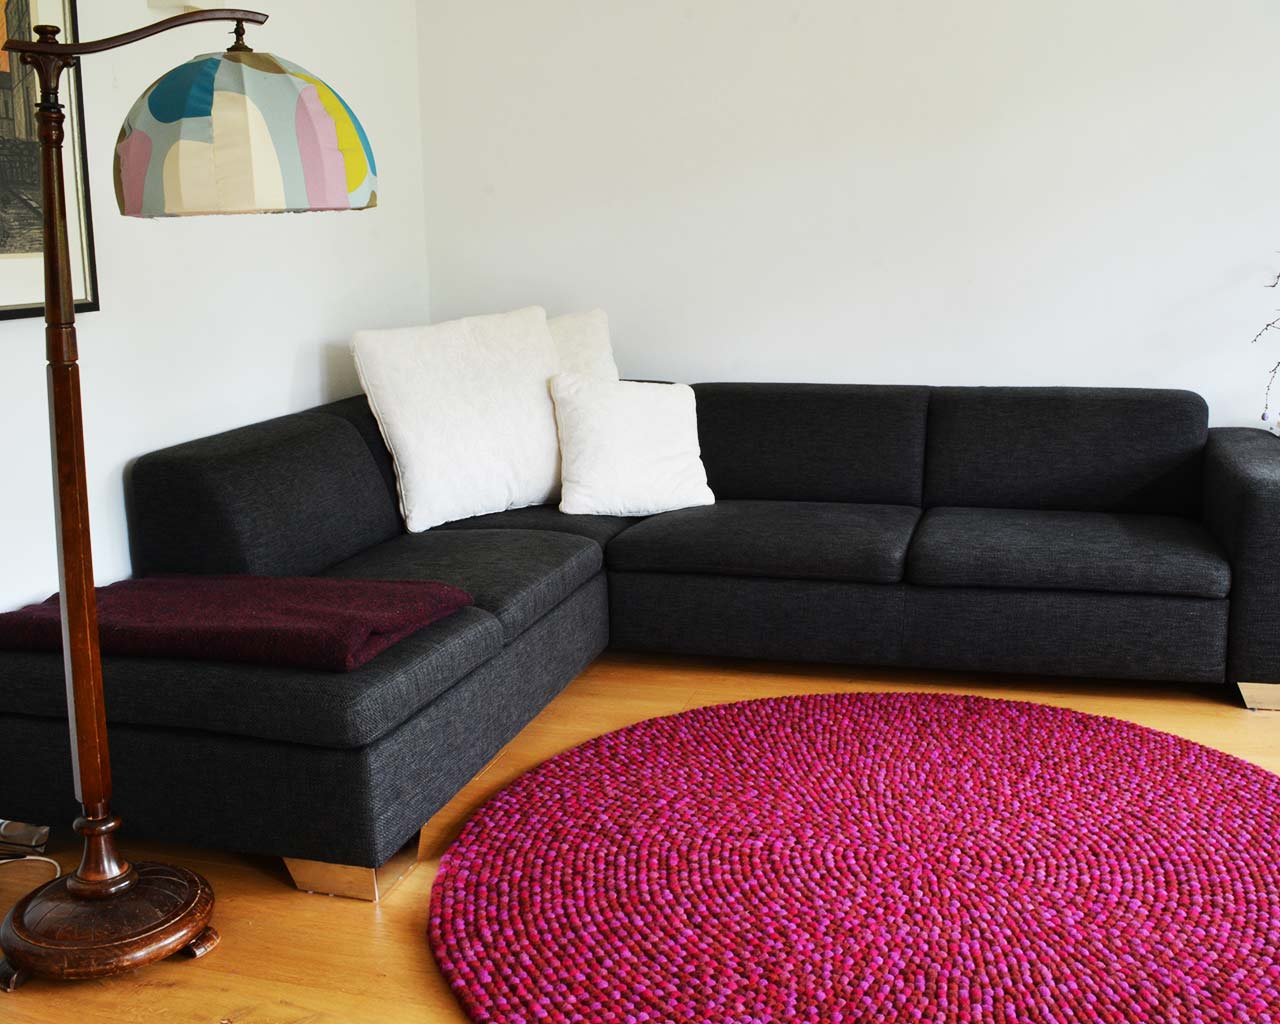 contrasting color rug furniture